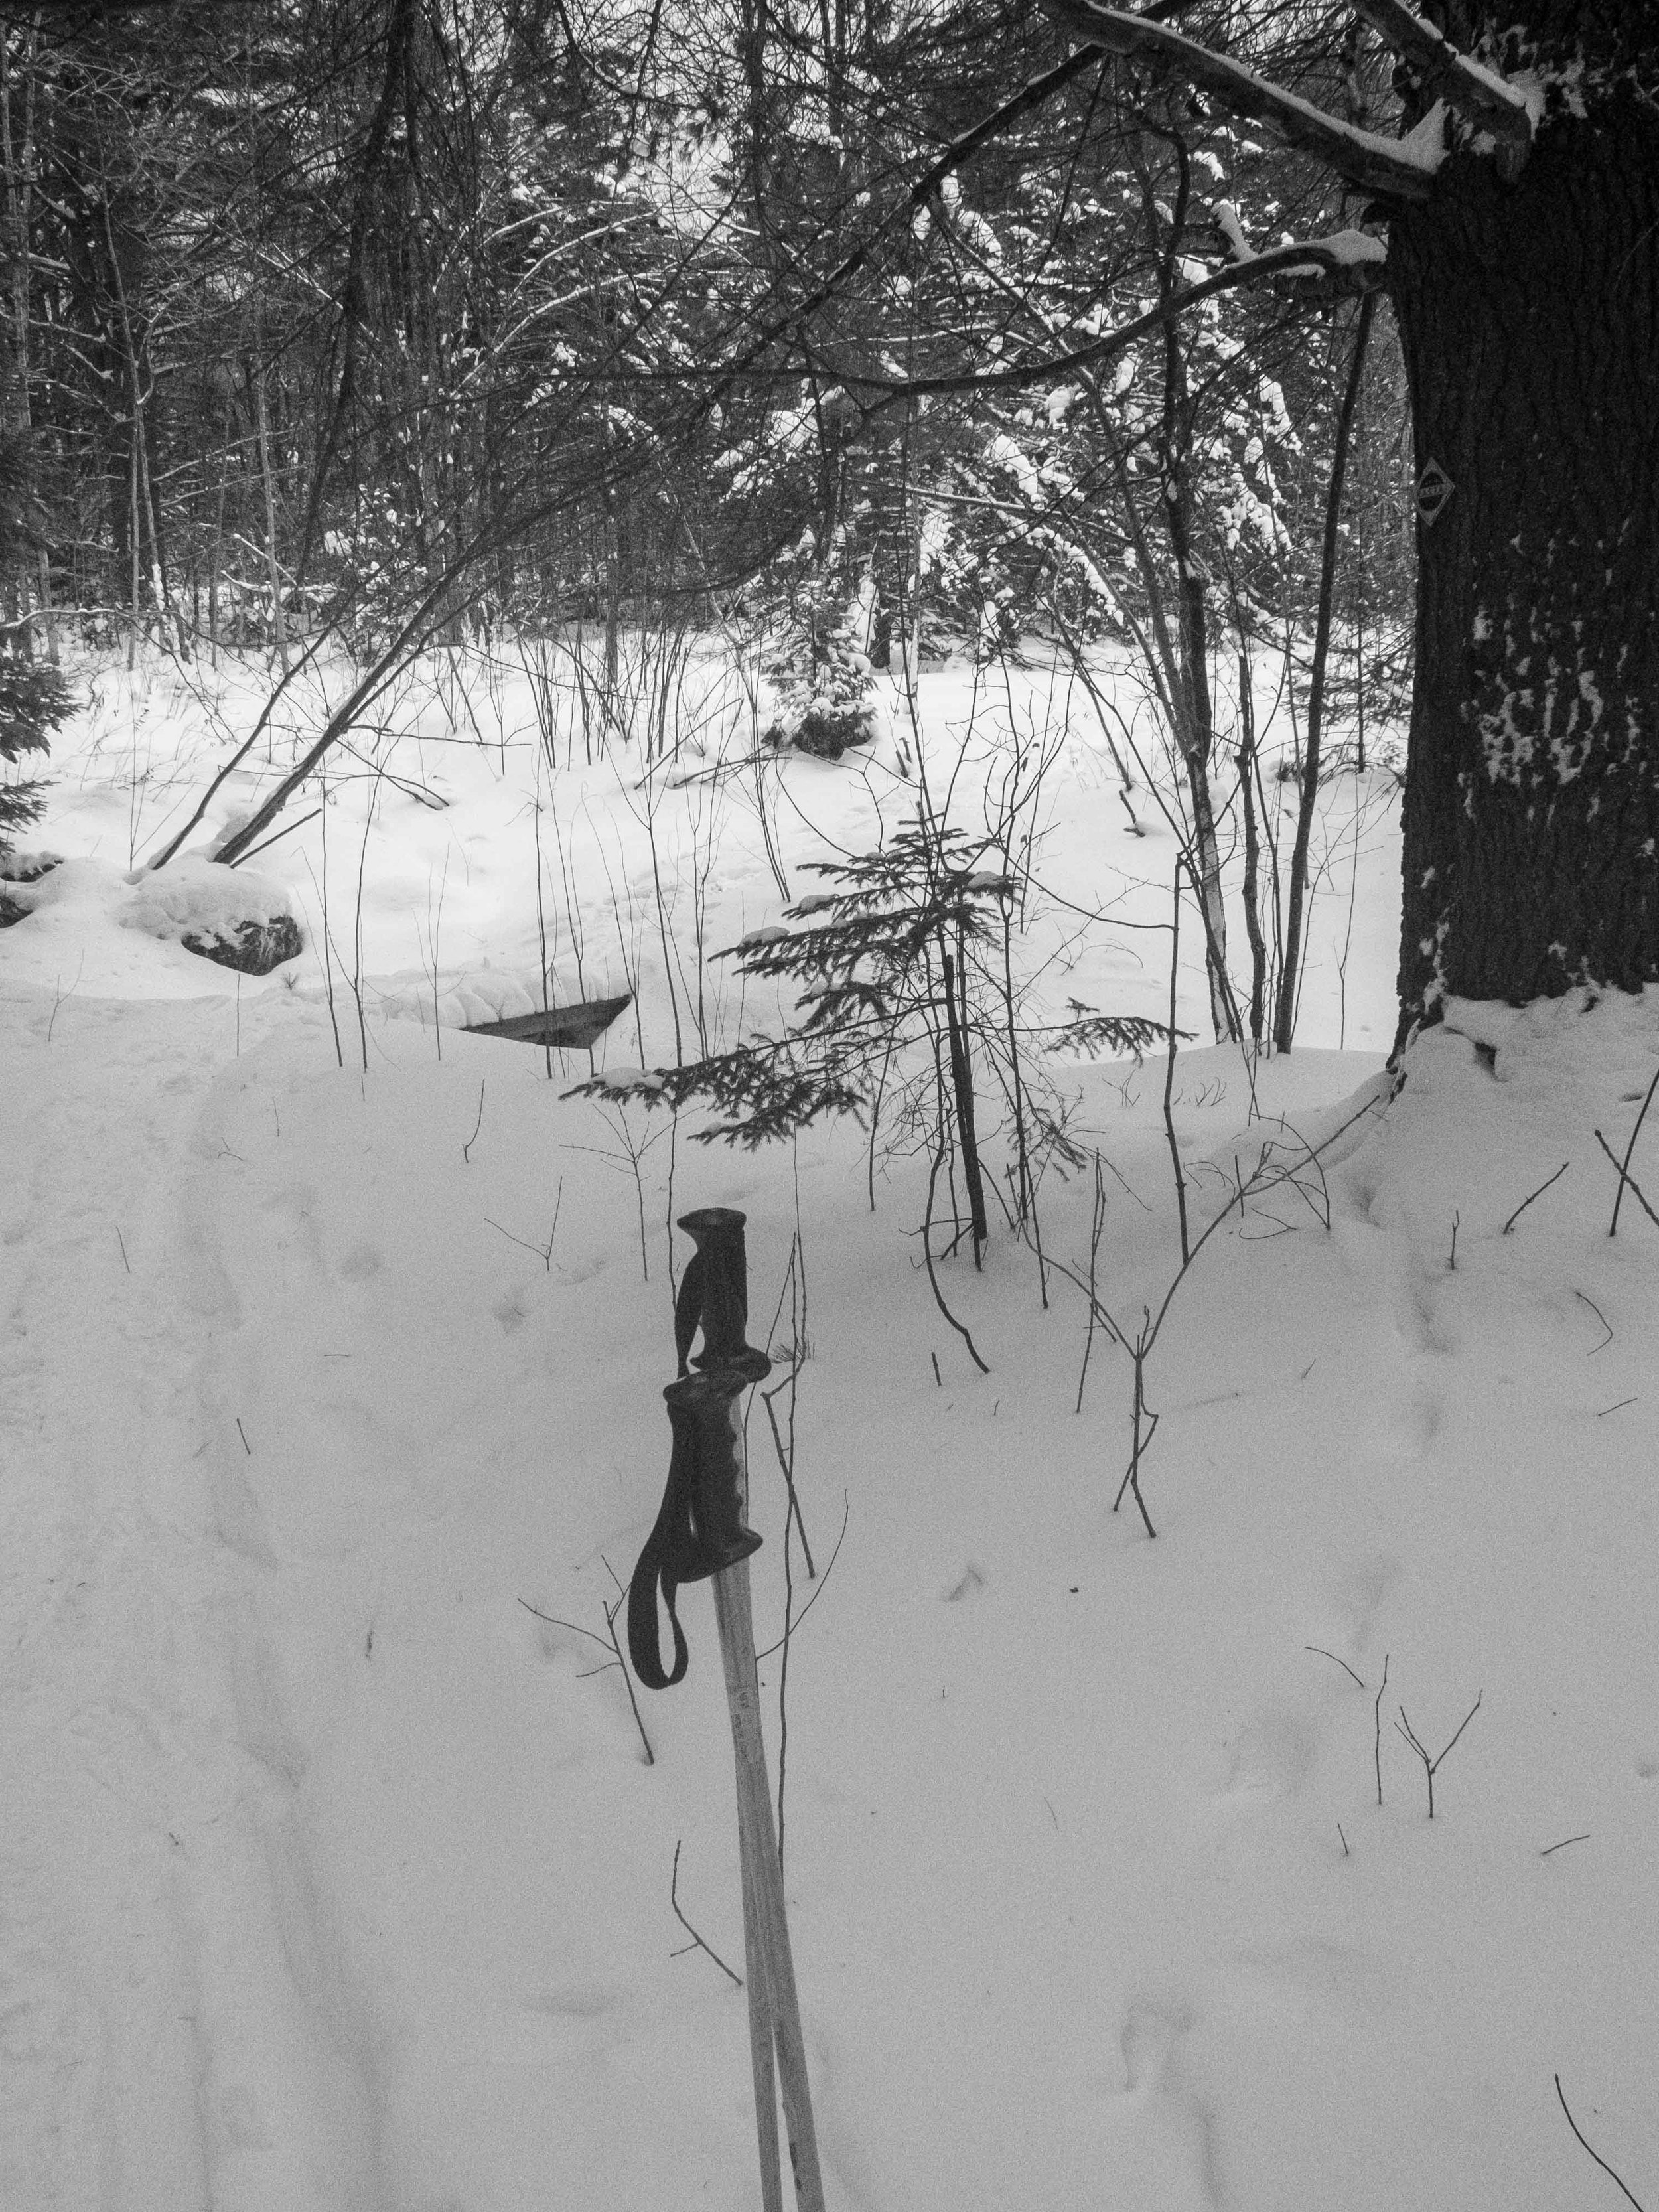 Once you crest the hill, you will drop back into a section of woods. There are two more small bridges you will cross. If you're on skis you'll have to side step up a small hill into the pasture above.